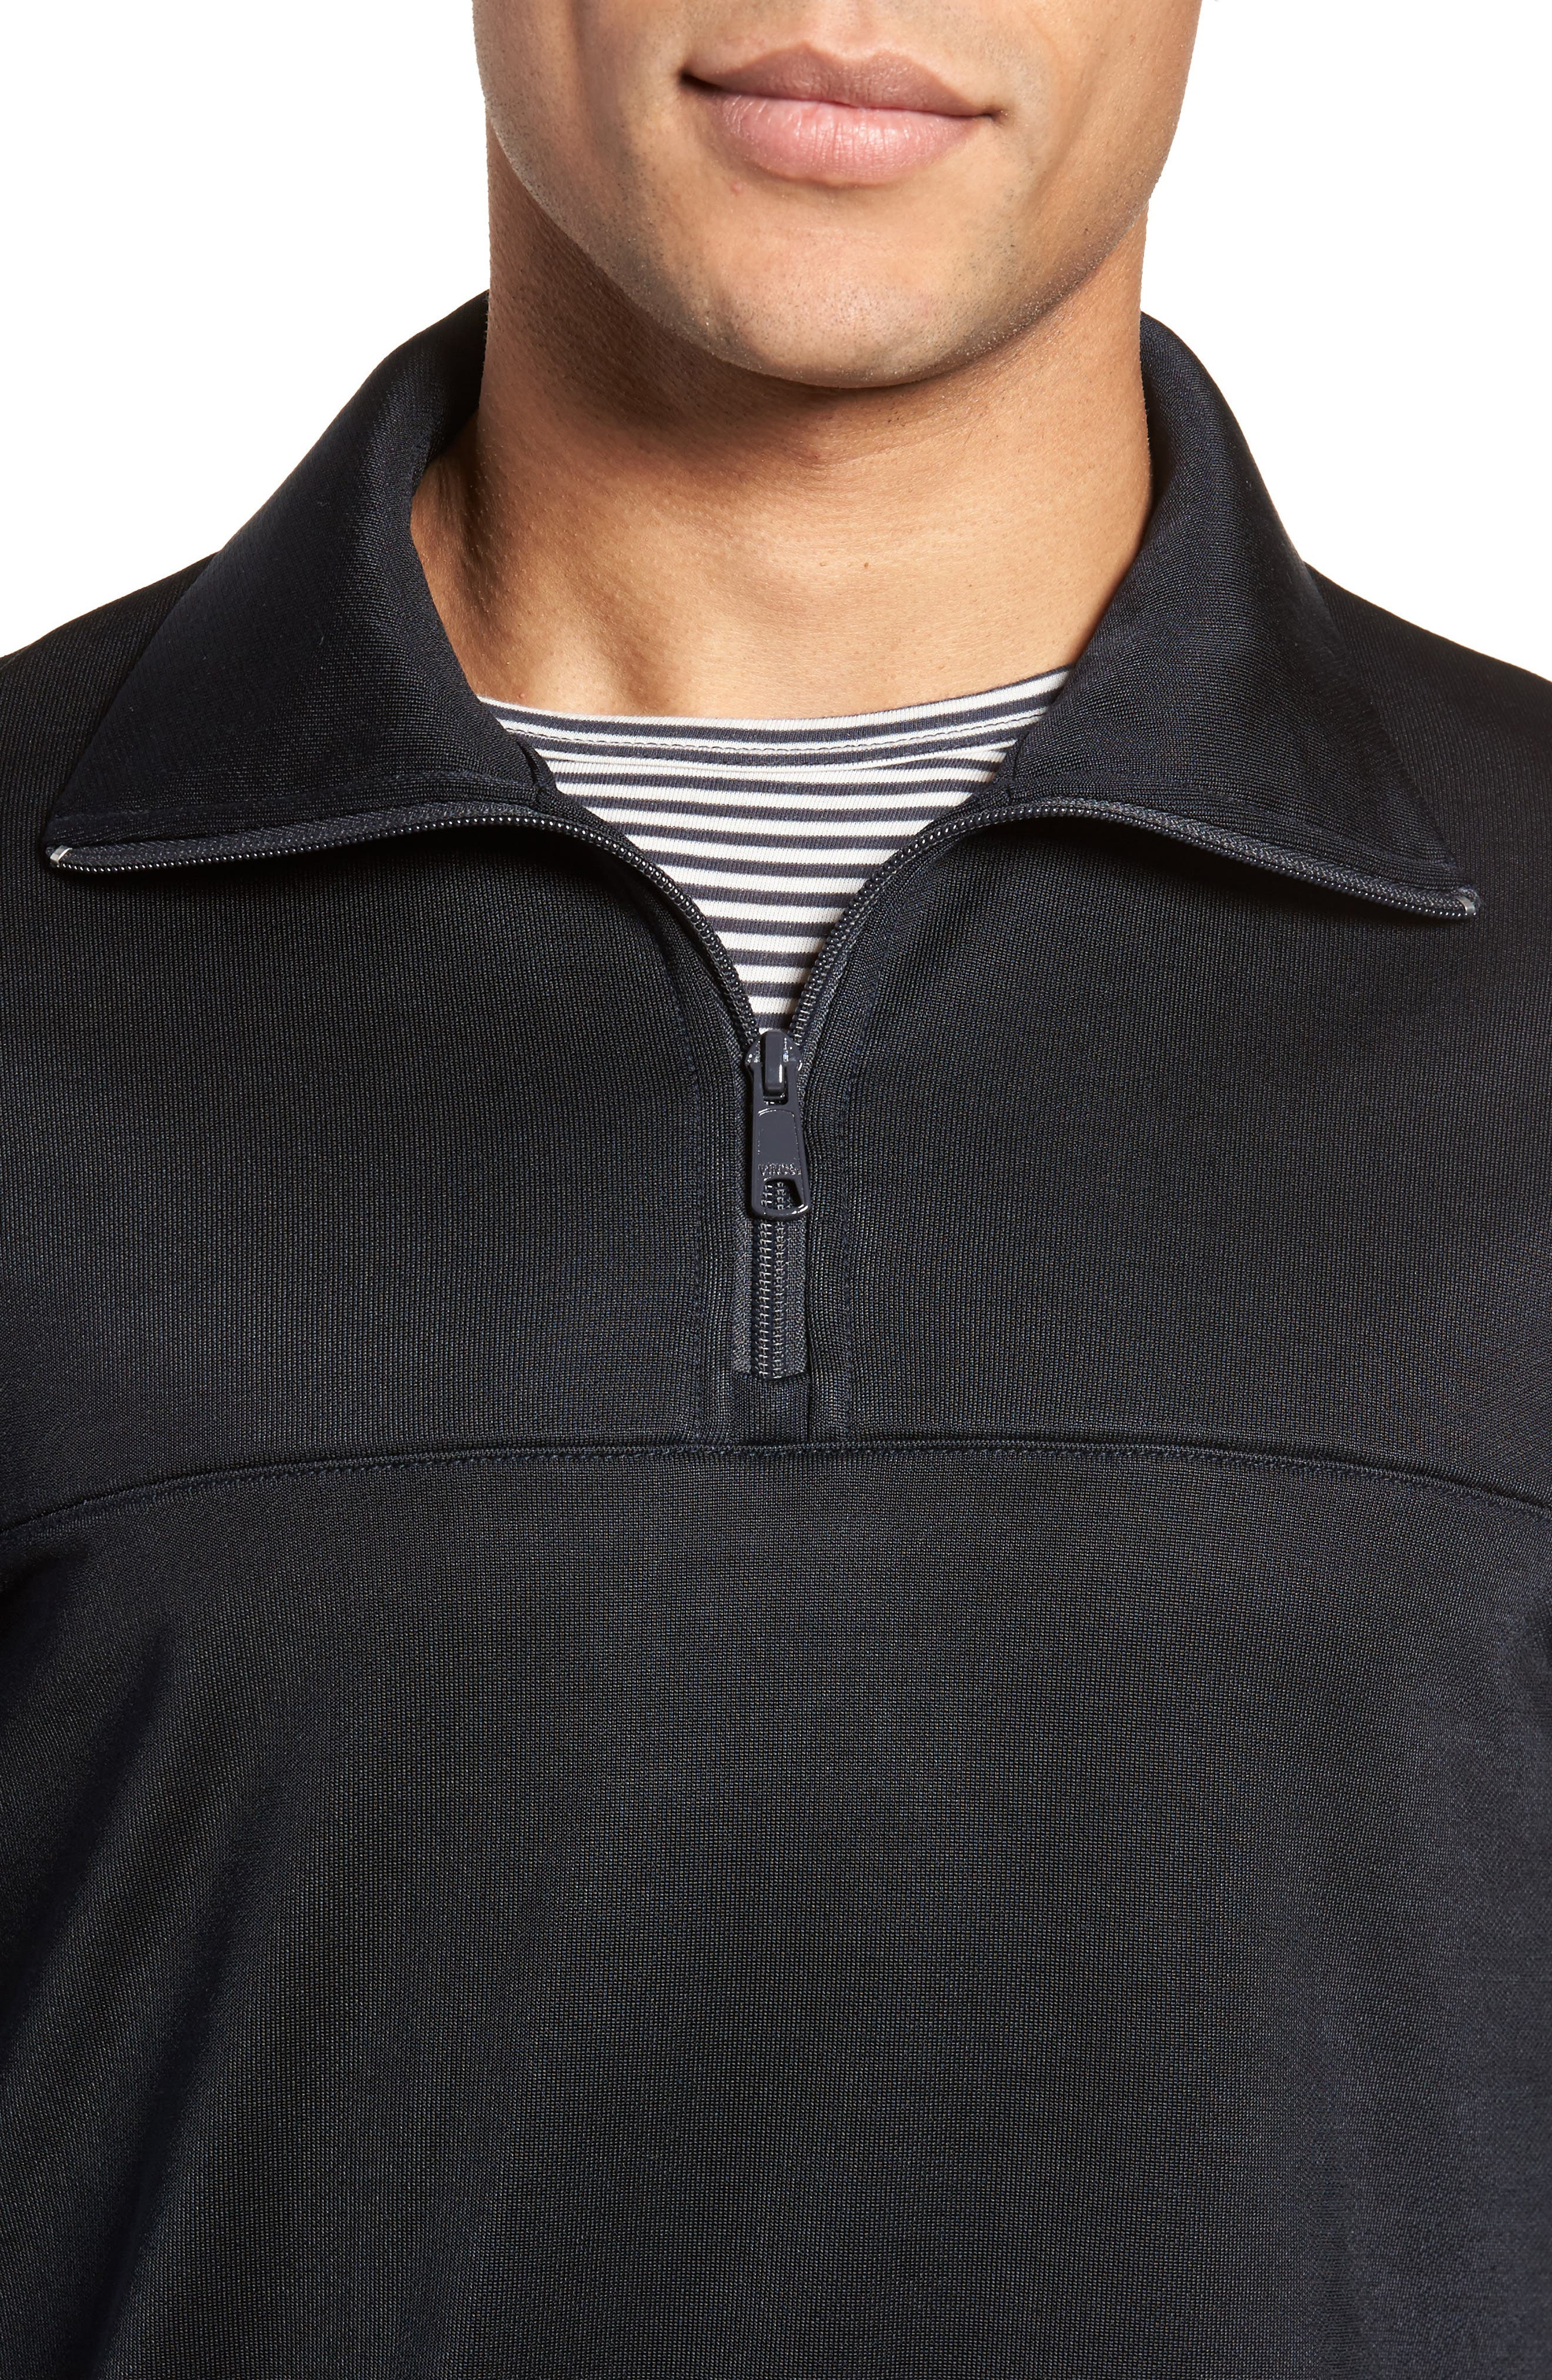 Quarter Zip Pullover,                             Alternate thumbnail 8, color,